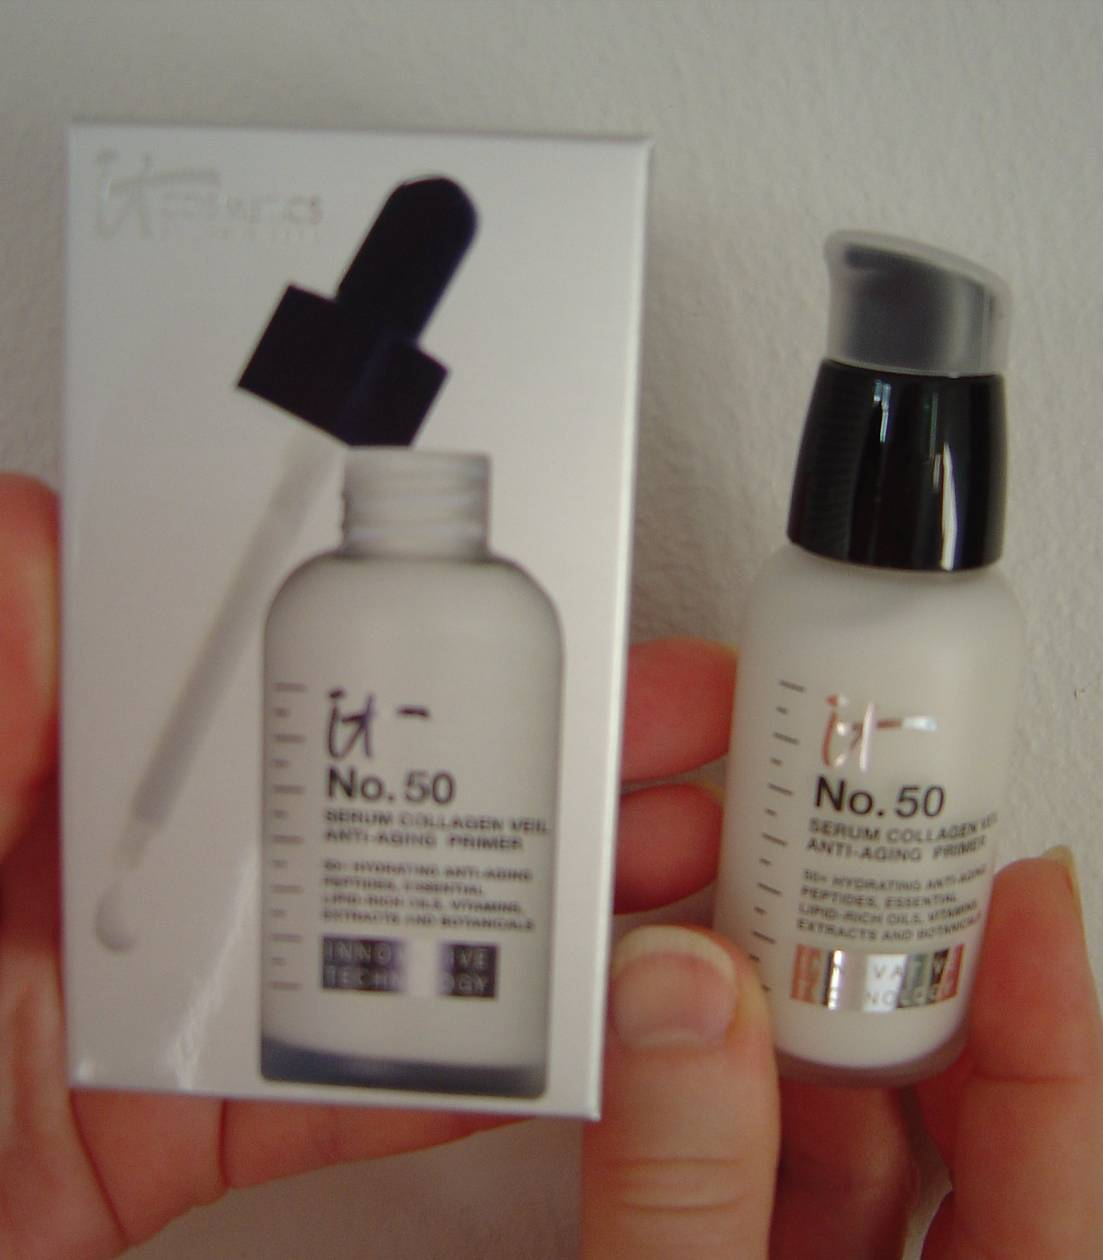 IT Cosmetics No. 50 Serum Anti-Aging Collagen Veil Primer.jpeg